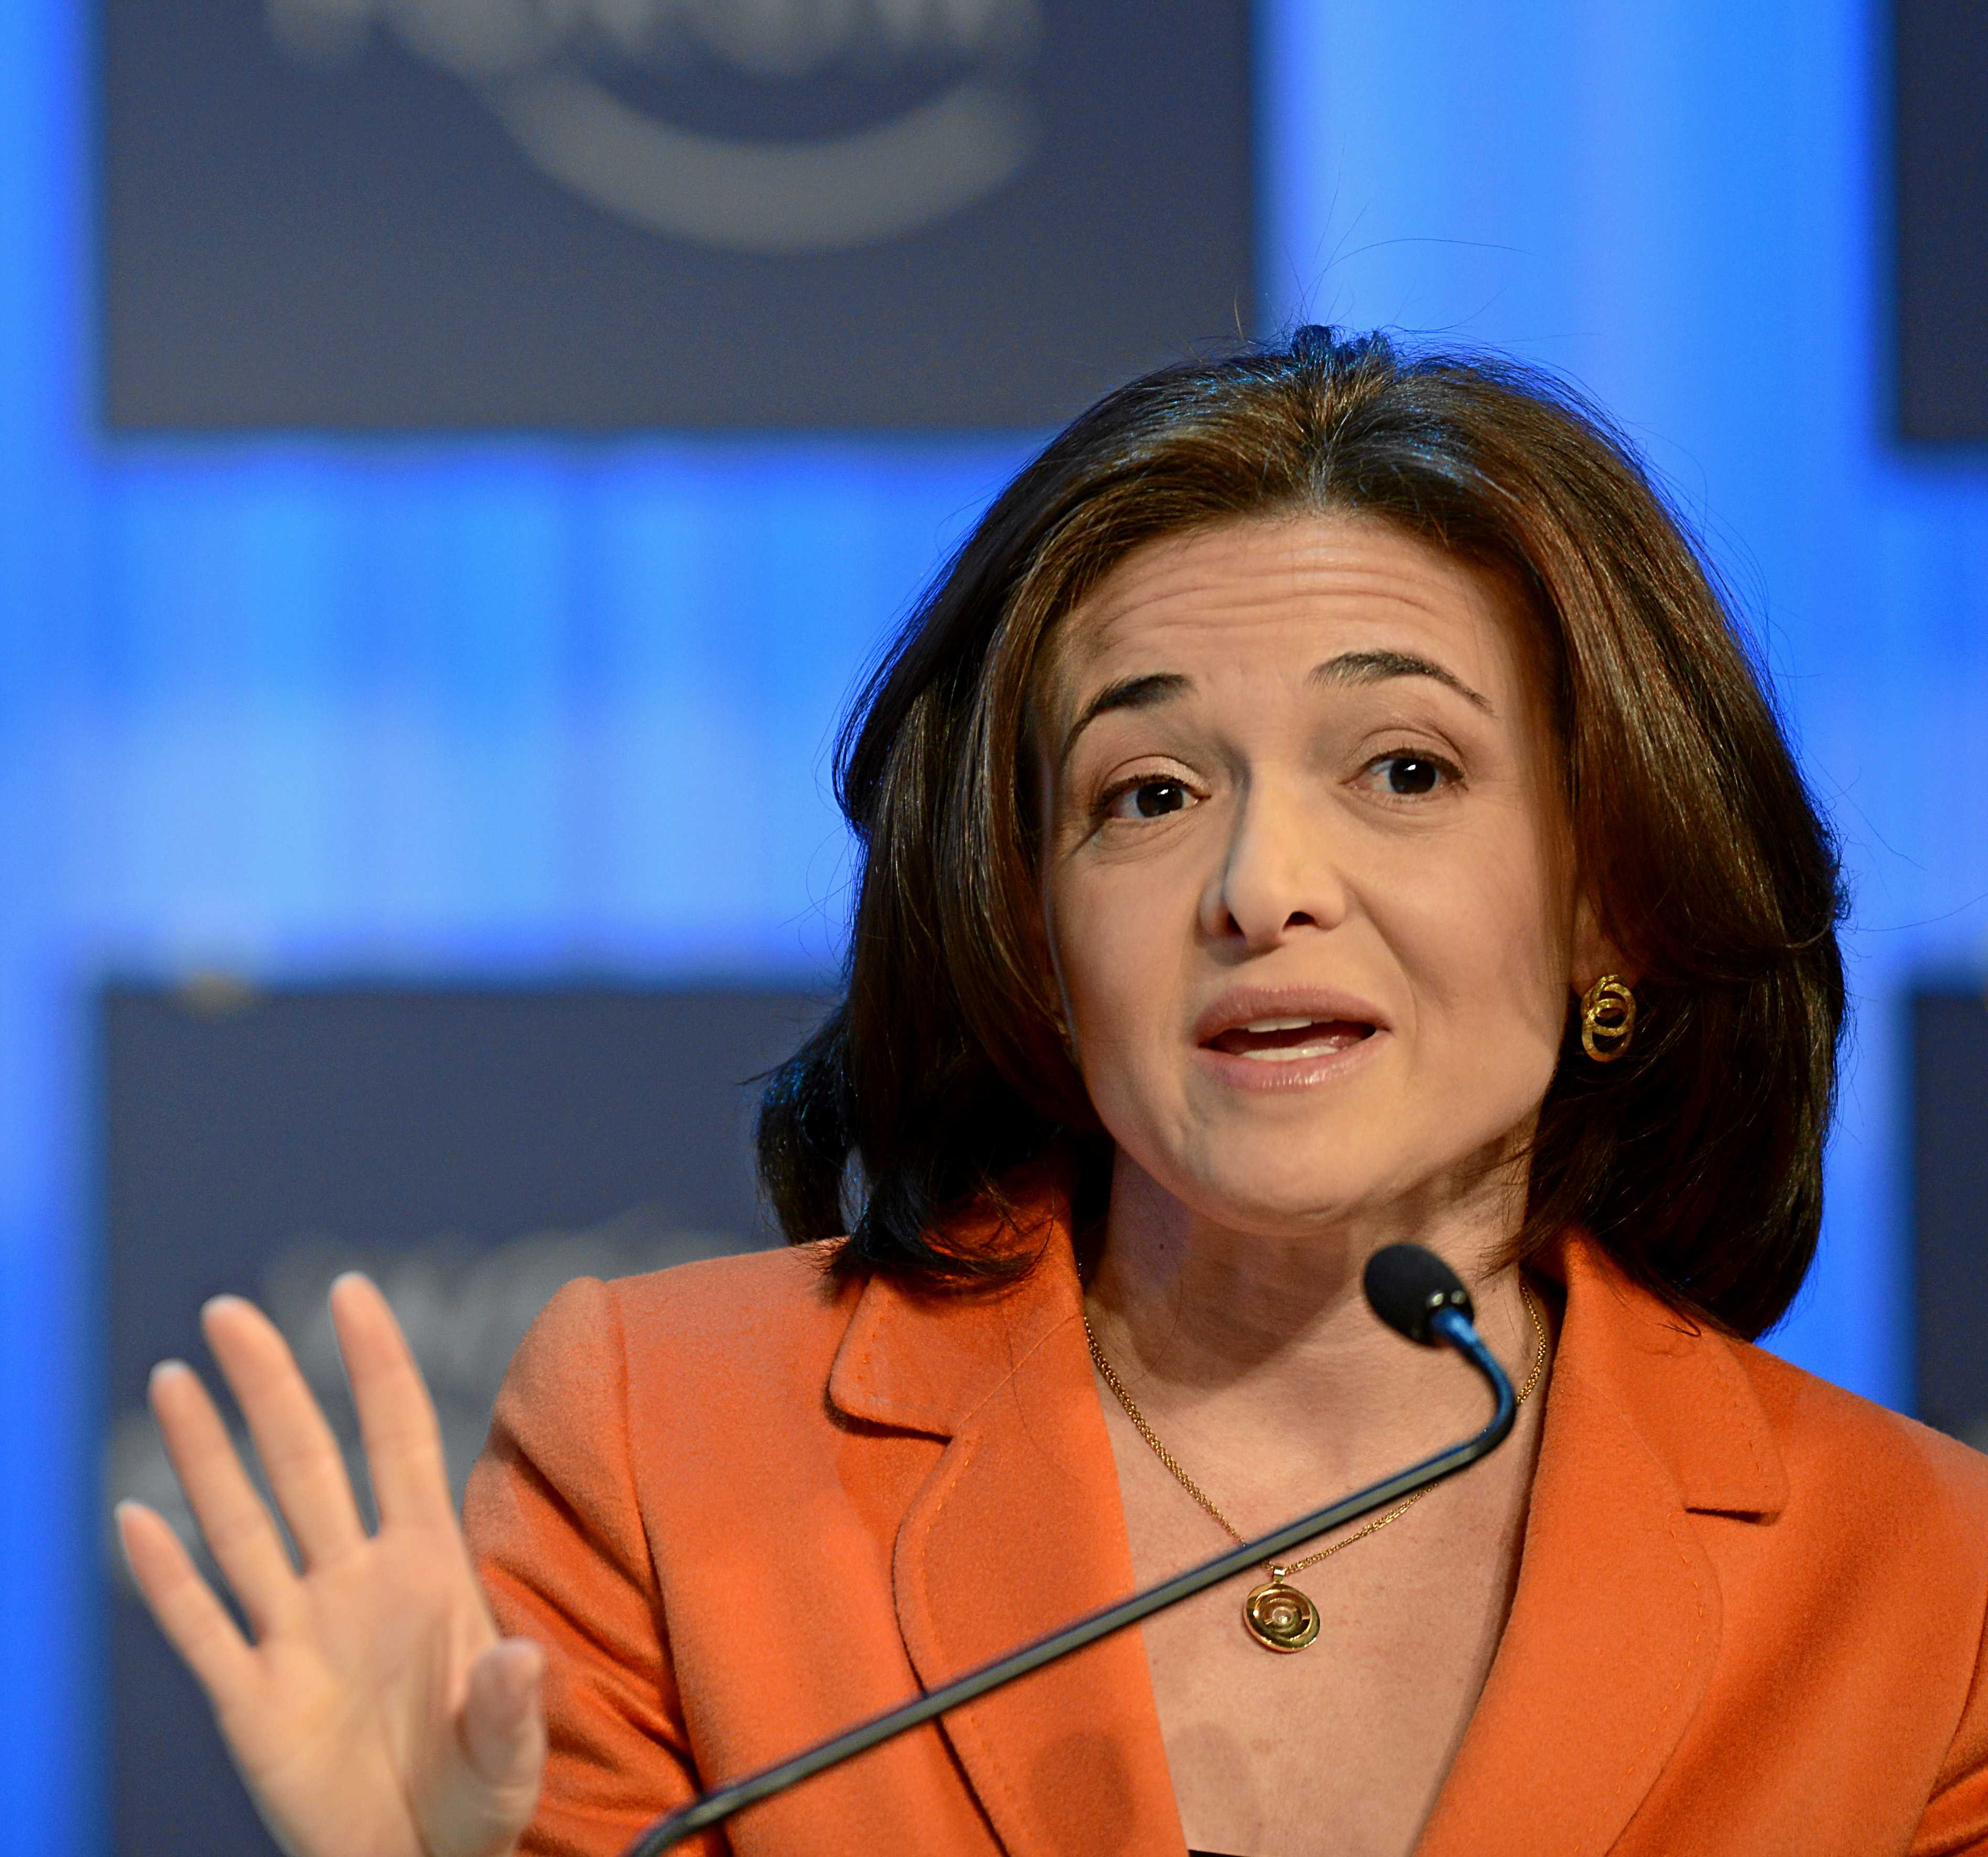 Sheryl Sandberg, who published a book entitled Lean In a little over a year ago, is determined to empower young girls and increase the number of leadership roles available to them.